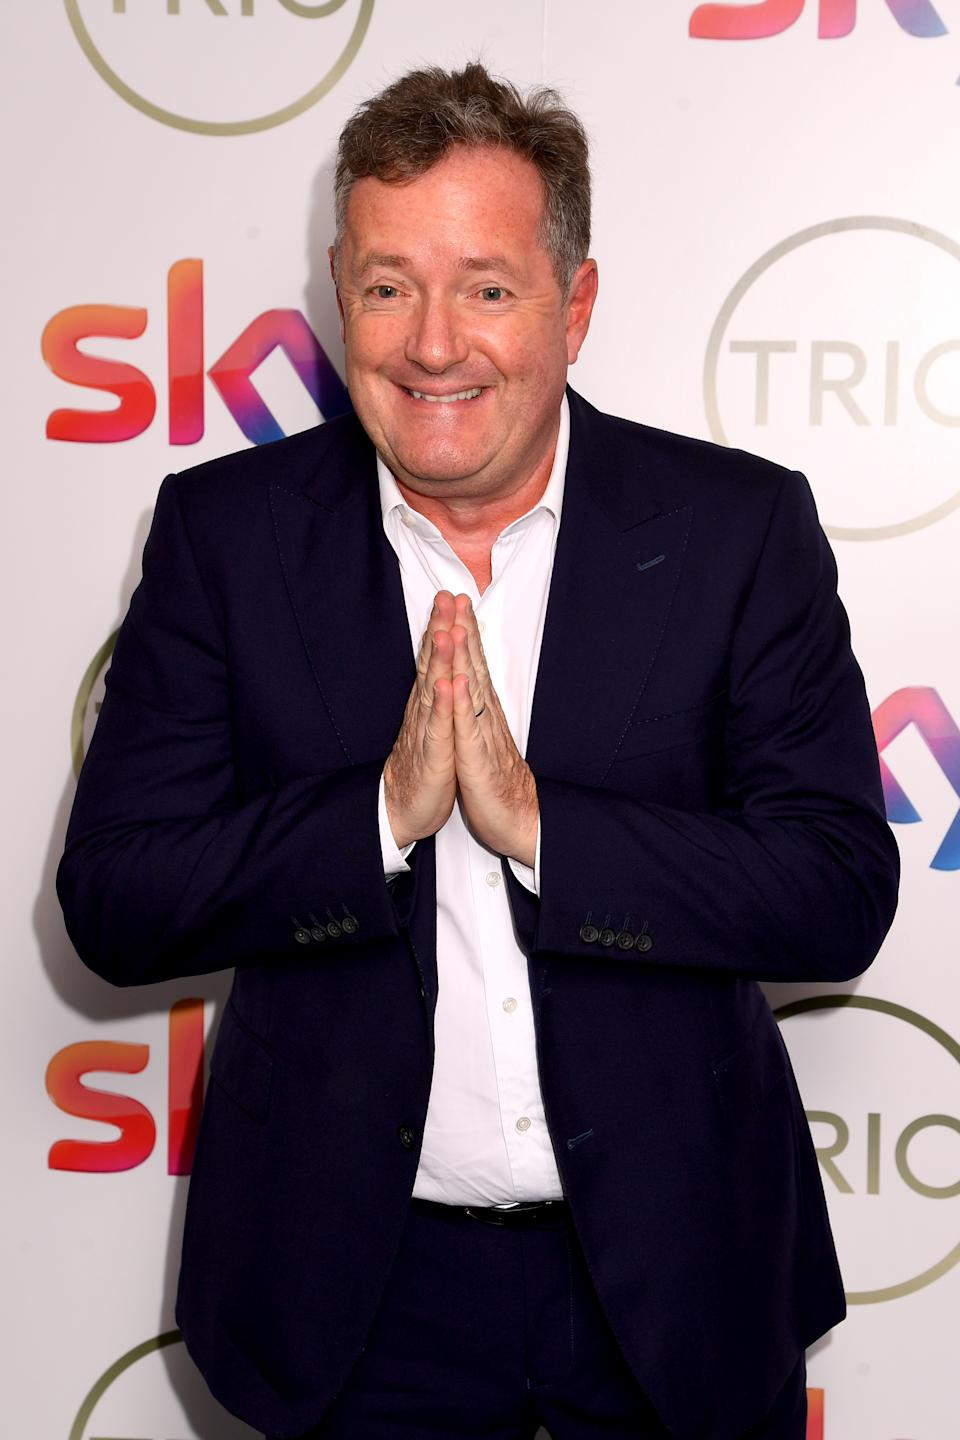 LONDON, ENGLAND - MARCH 10: Piers Morgan attends the TRIC Awards 2020 at The Grosvenor House Hotel on March 10, 2020 in London, England. (Photo by Dave J Hogan/Getty Images)